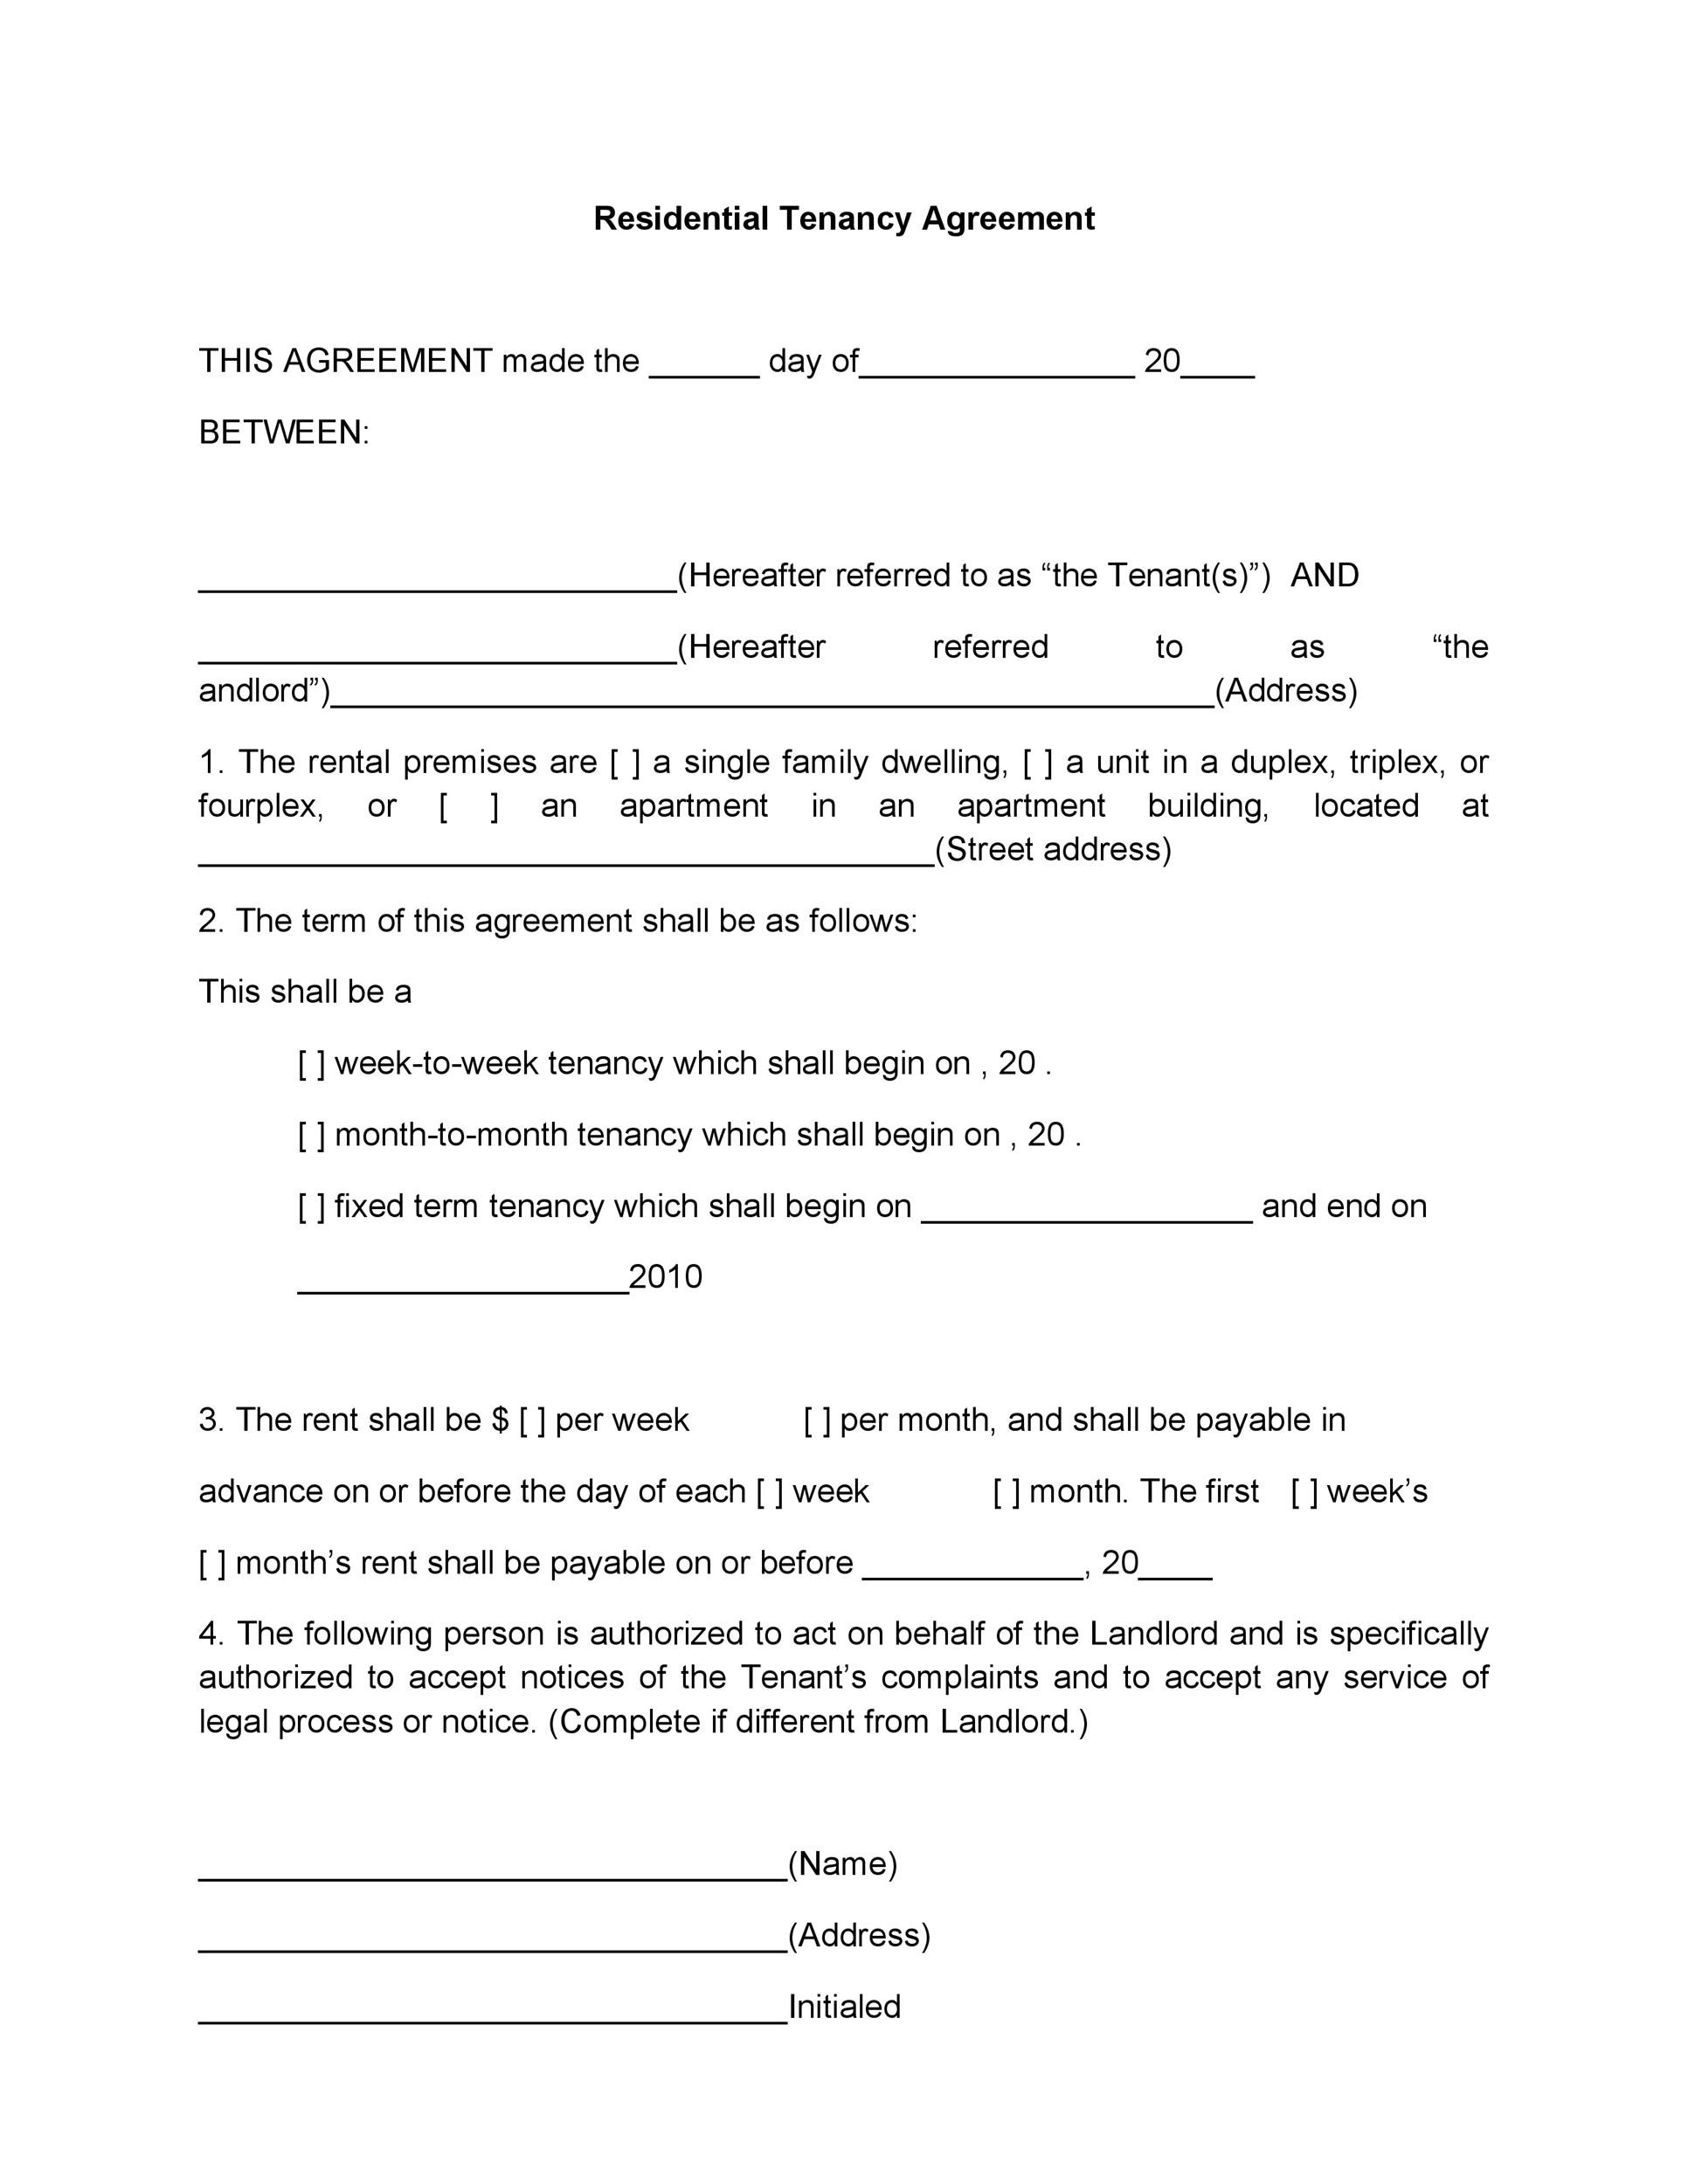 Landlord Lease Agreement Tempalte Printable Sample Simple Room